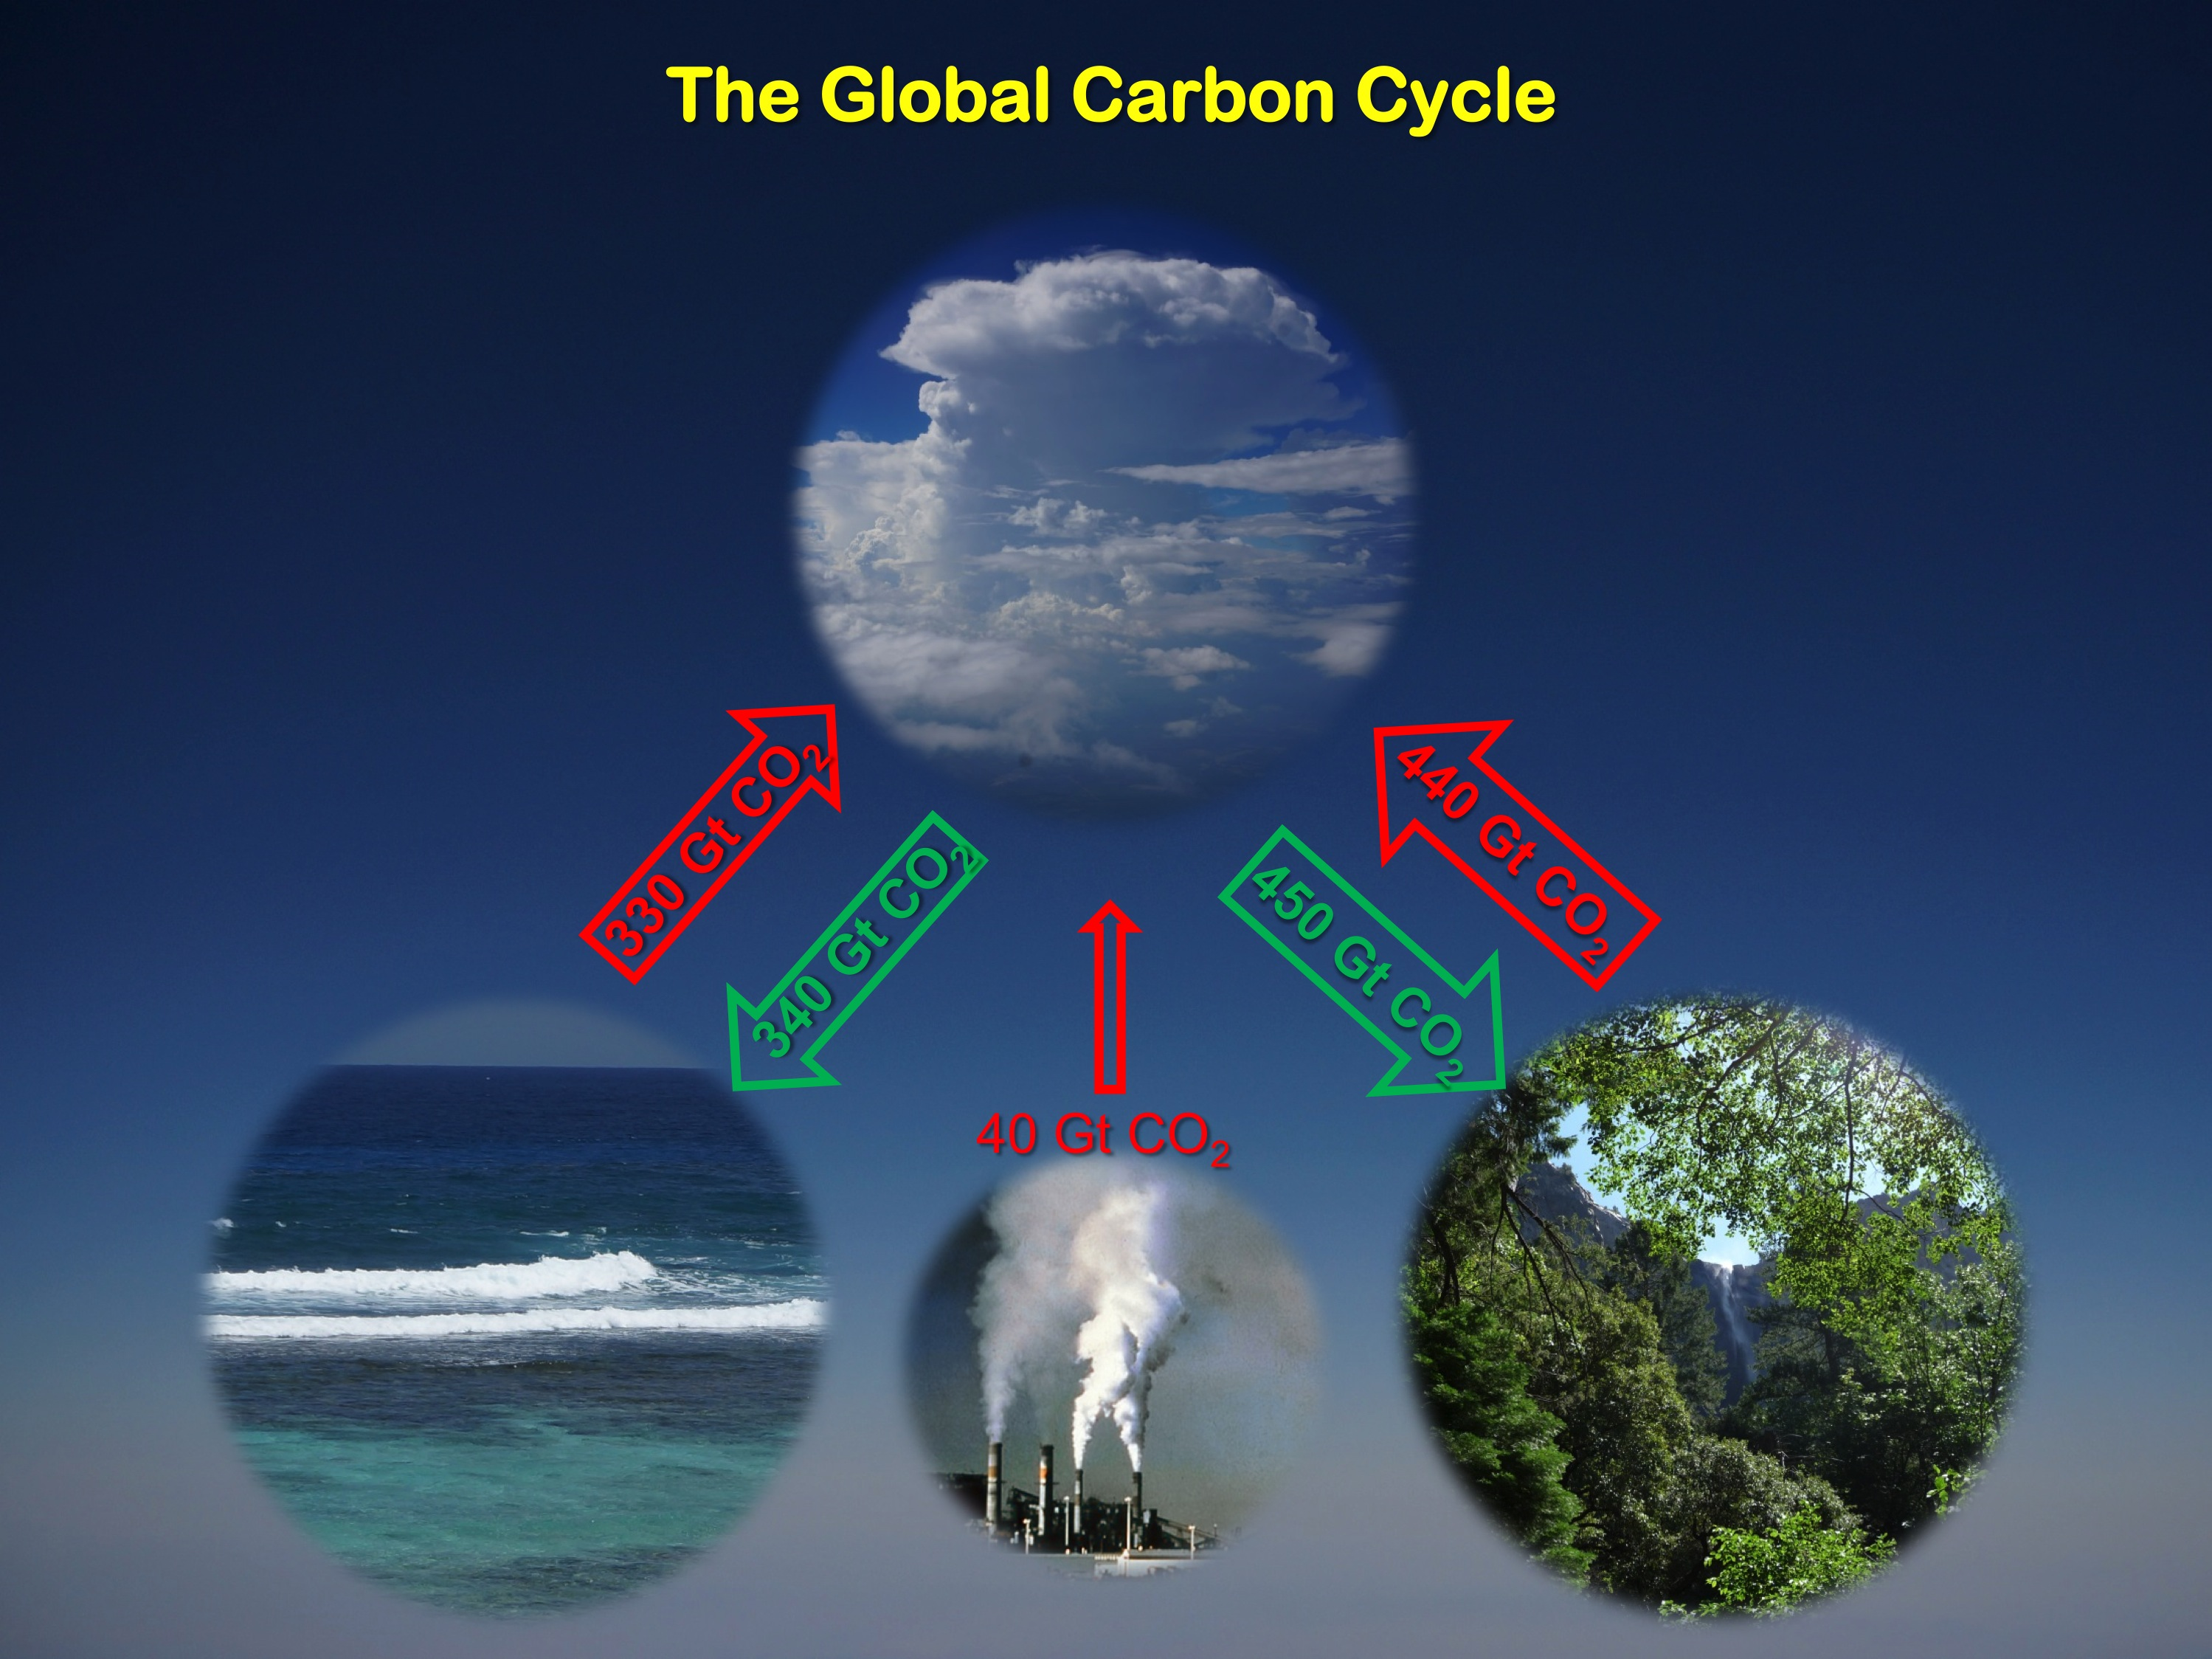 The ocean and land have continued to, over time, absorb about half of all carbon dioxide emissions.